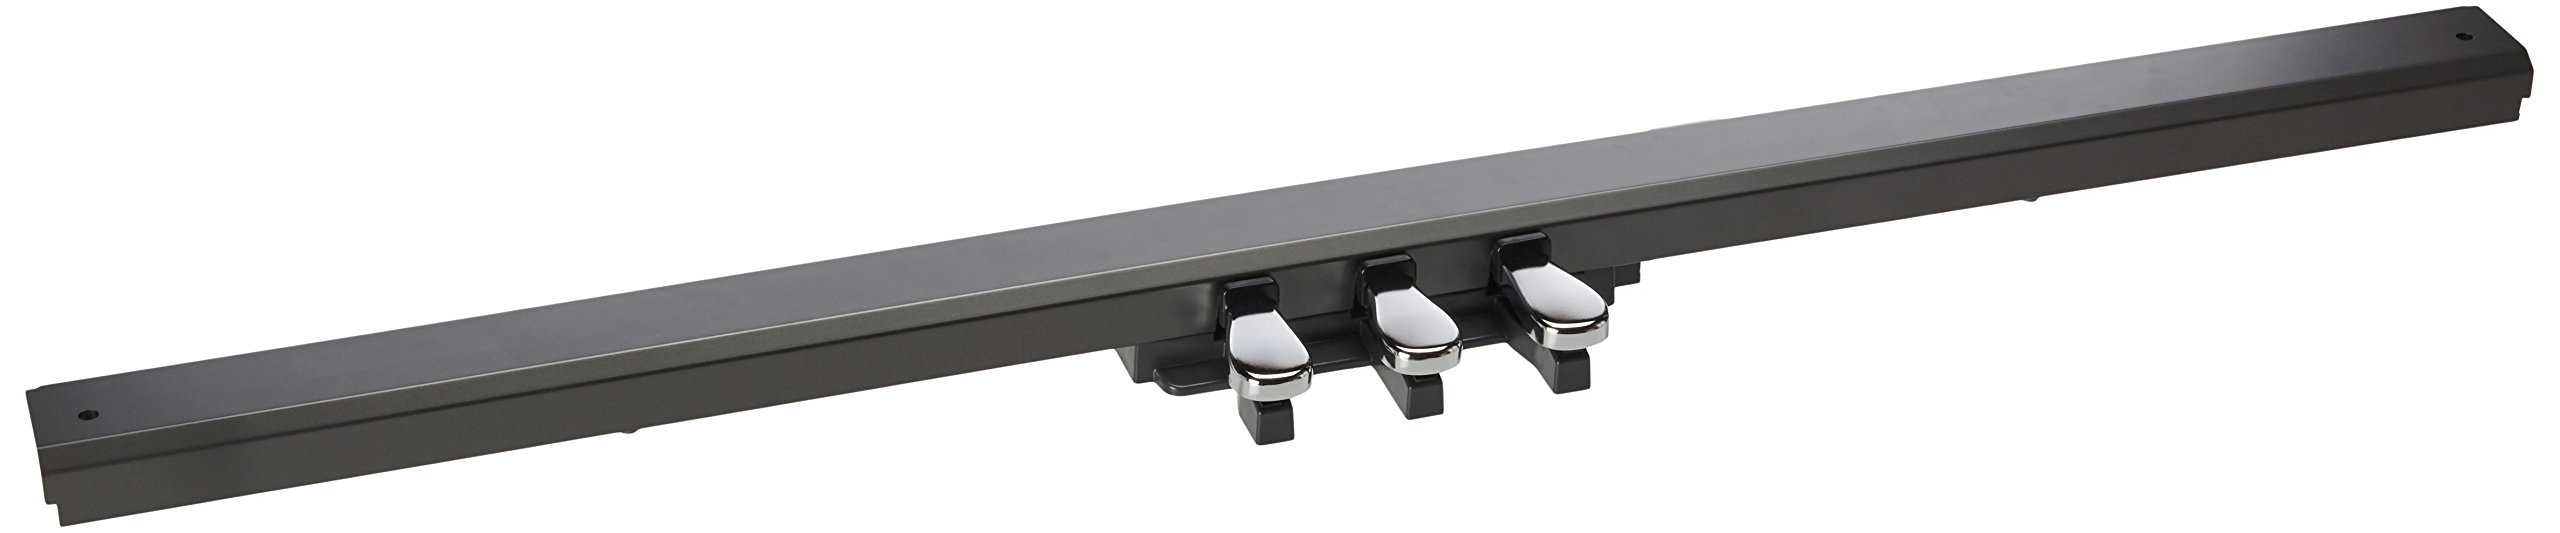 Casio SP32 Pedal Board for CS67 Stand